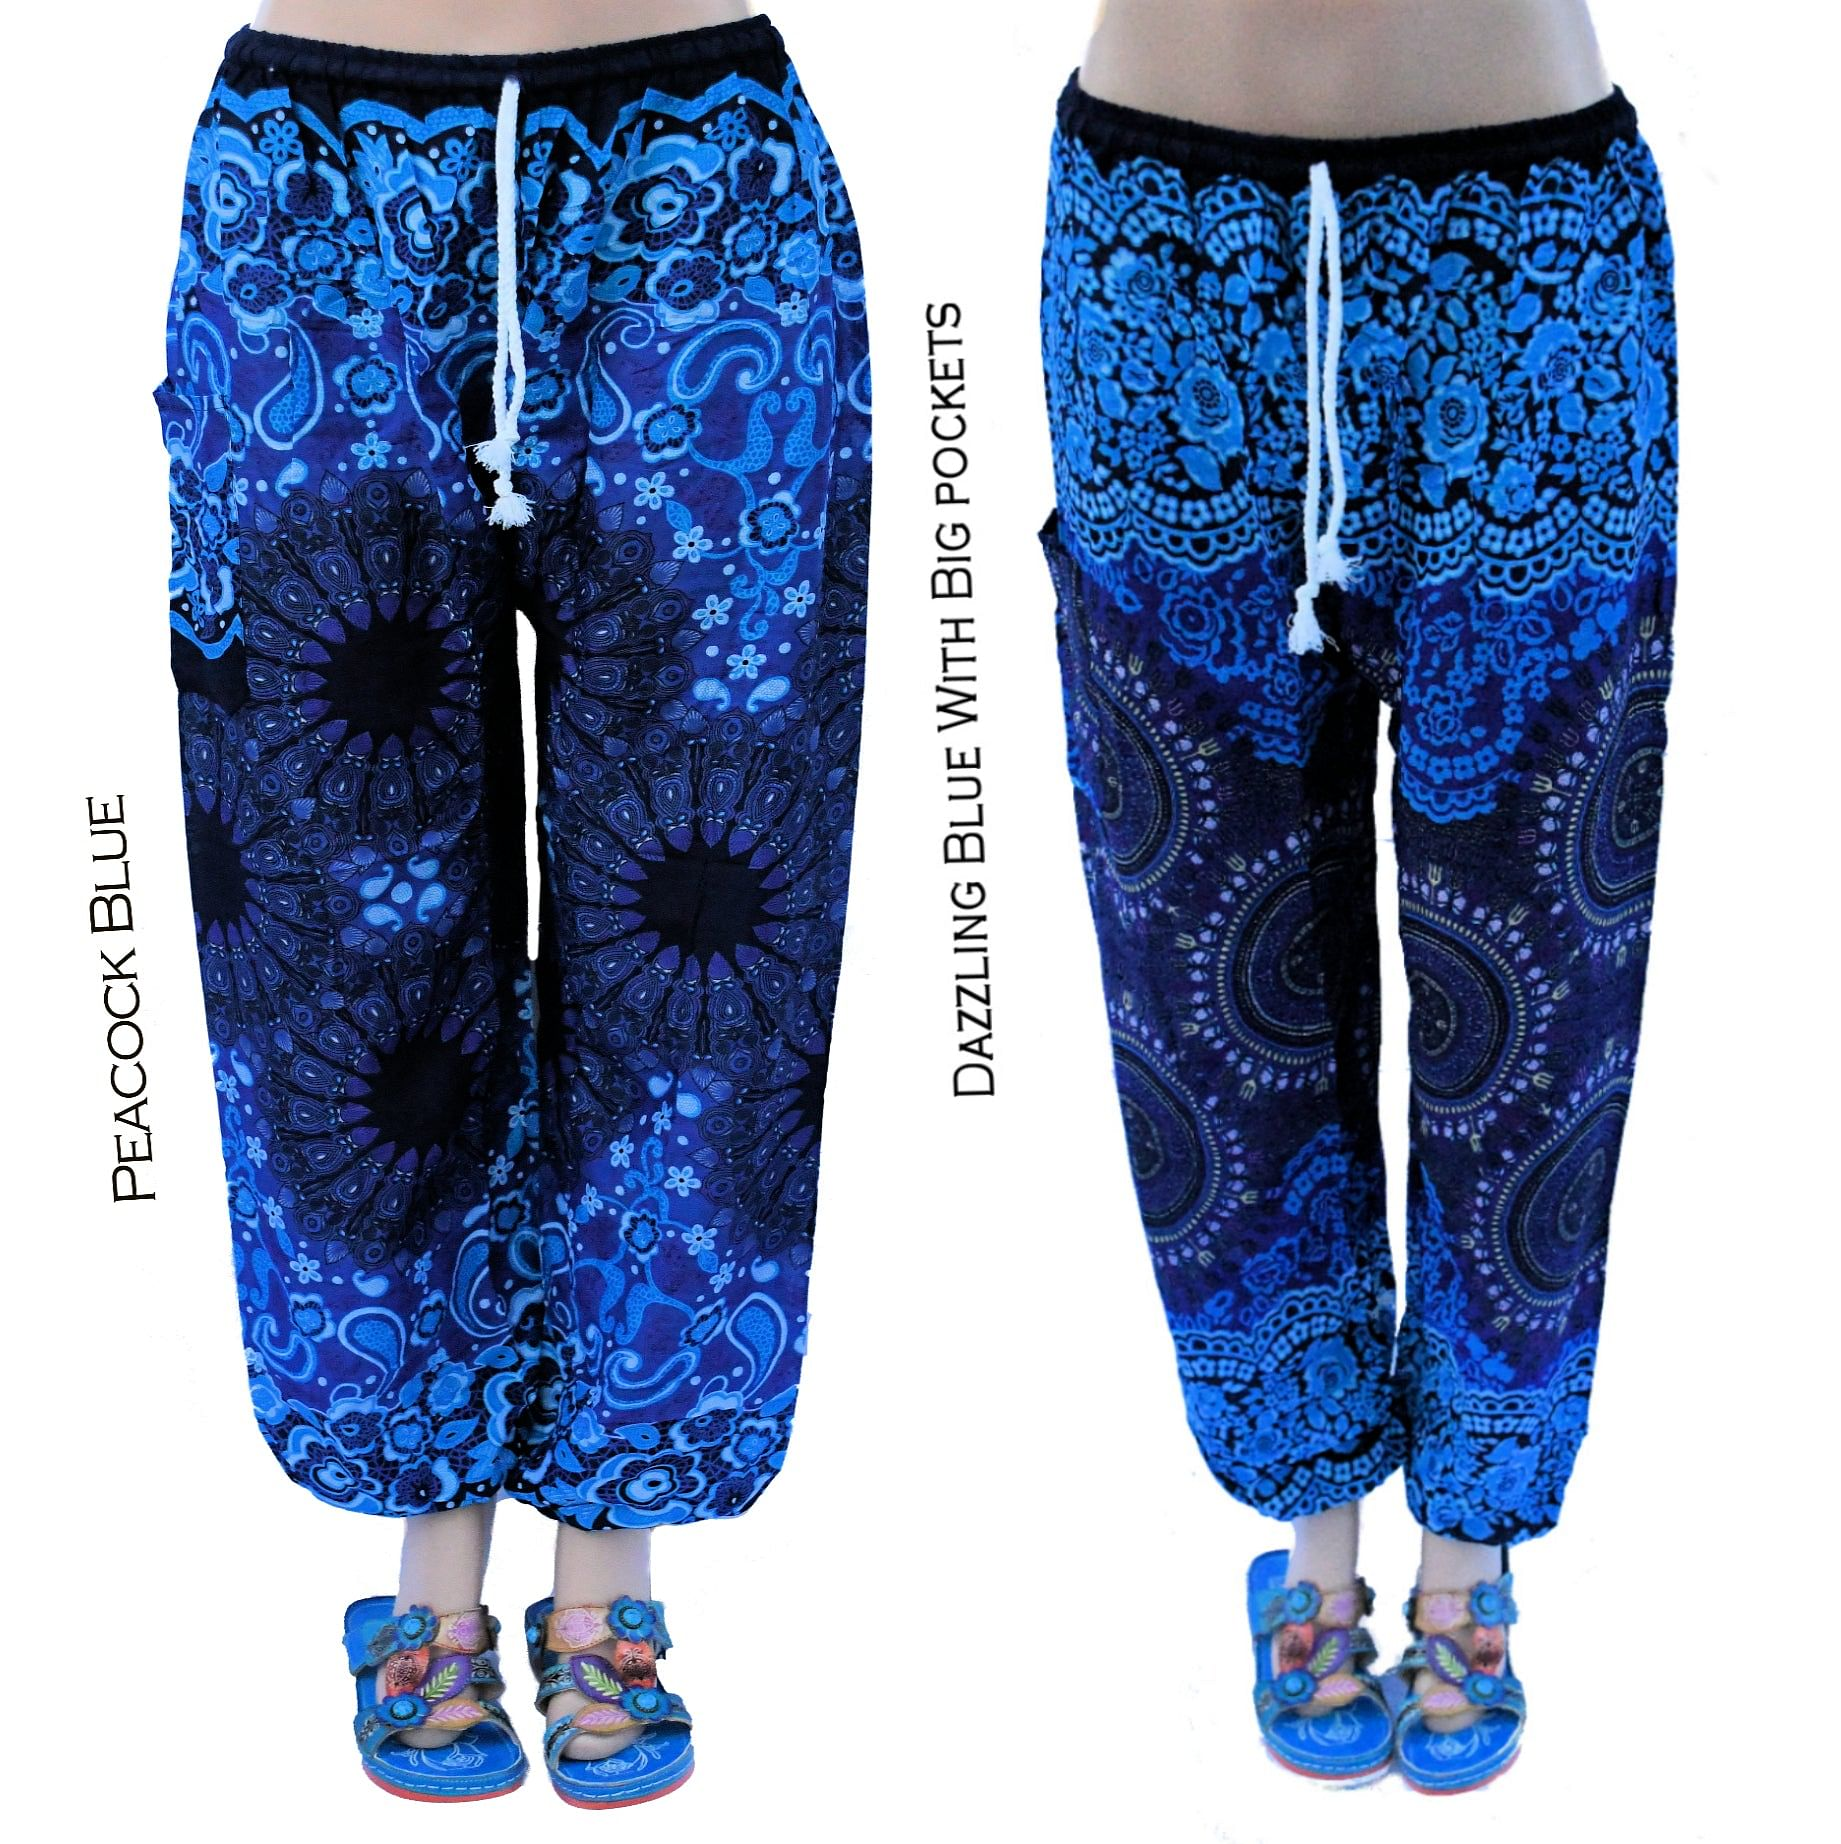 Women's Thai Harem Pants – Boho Style Lounge Pants – Lightweight Flowy Fabric, Loose and Comfortable Fit for Yoga, Travel, Sleep, Beach – Elastic Waist With or Without Drawstrings